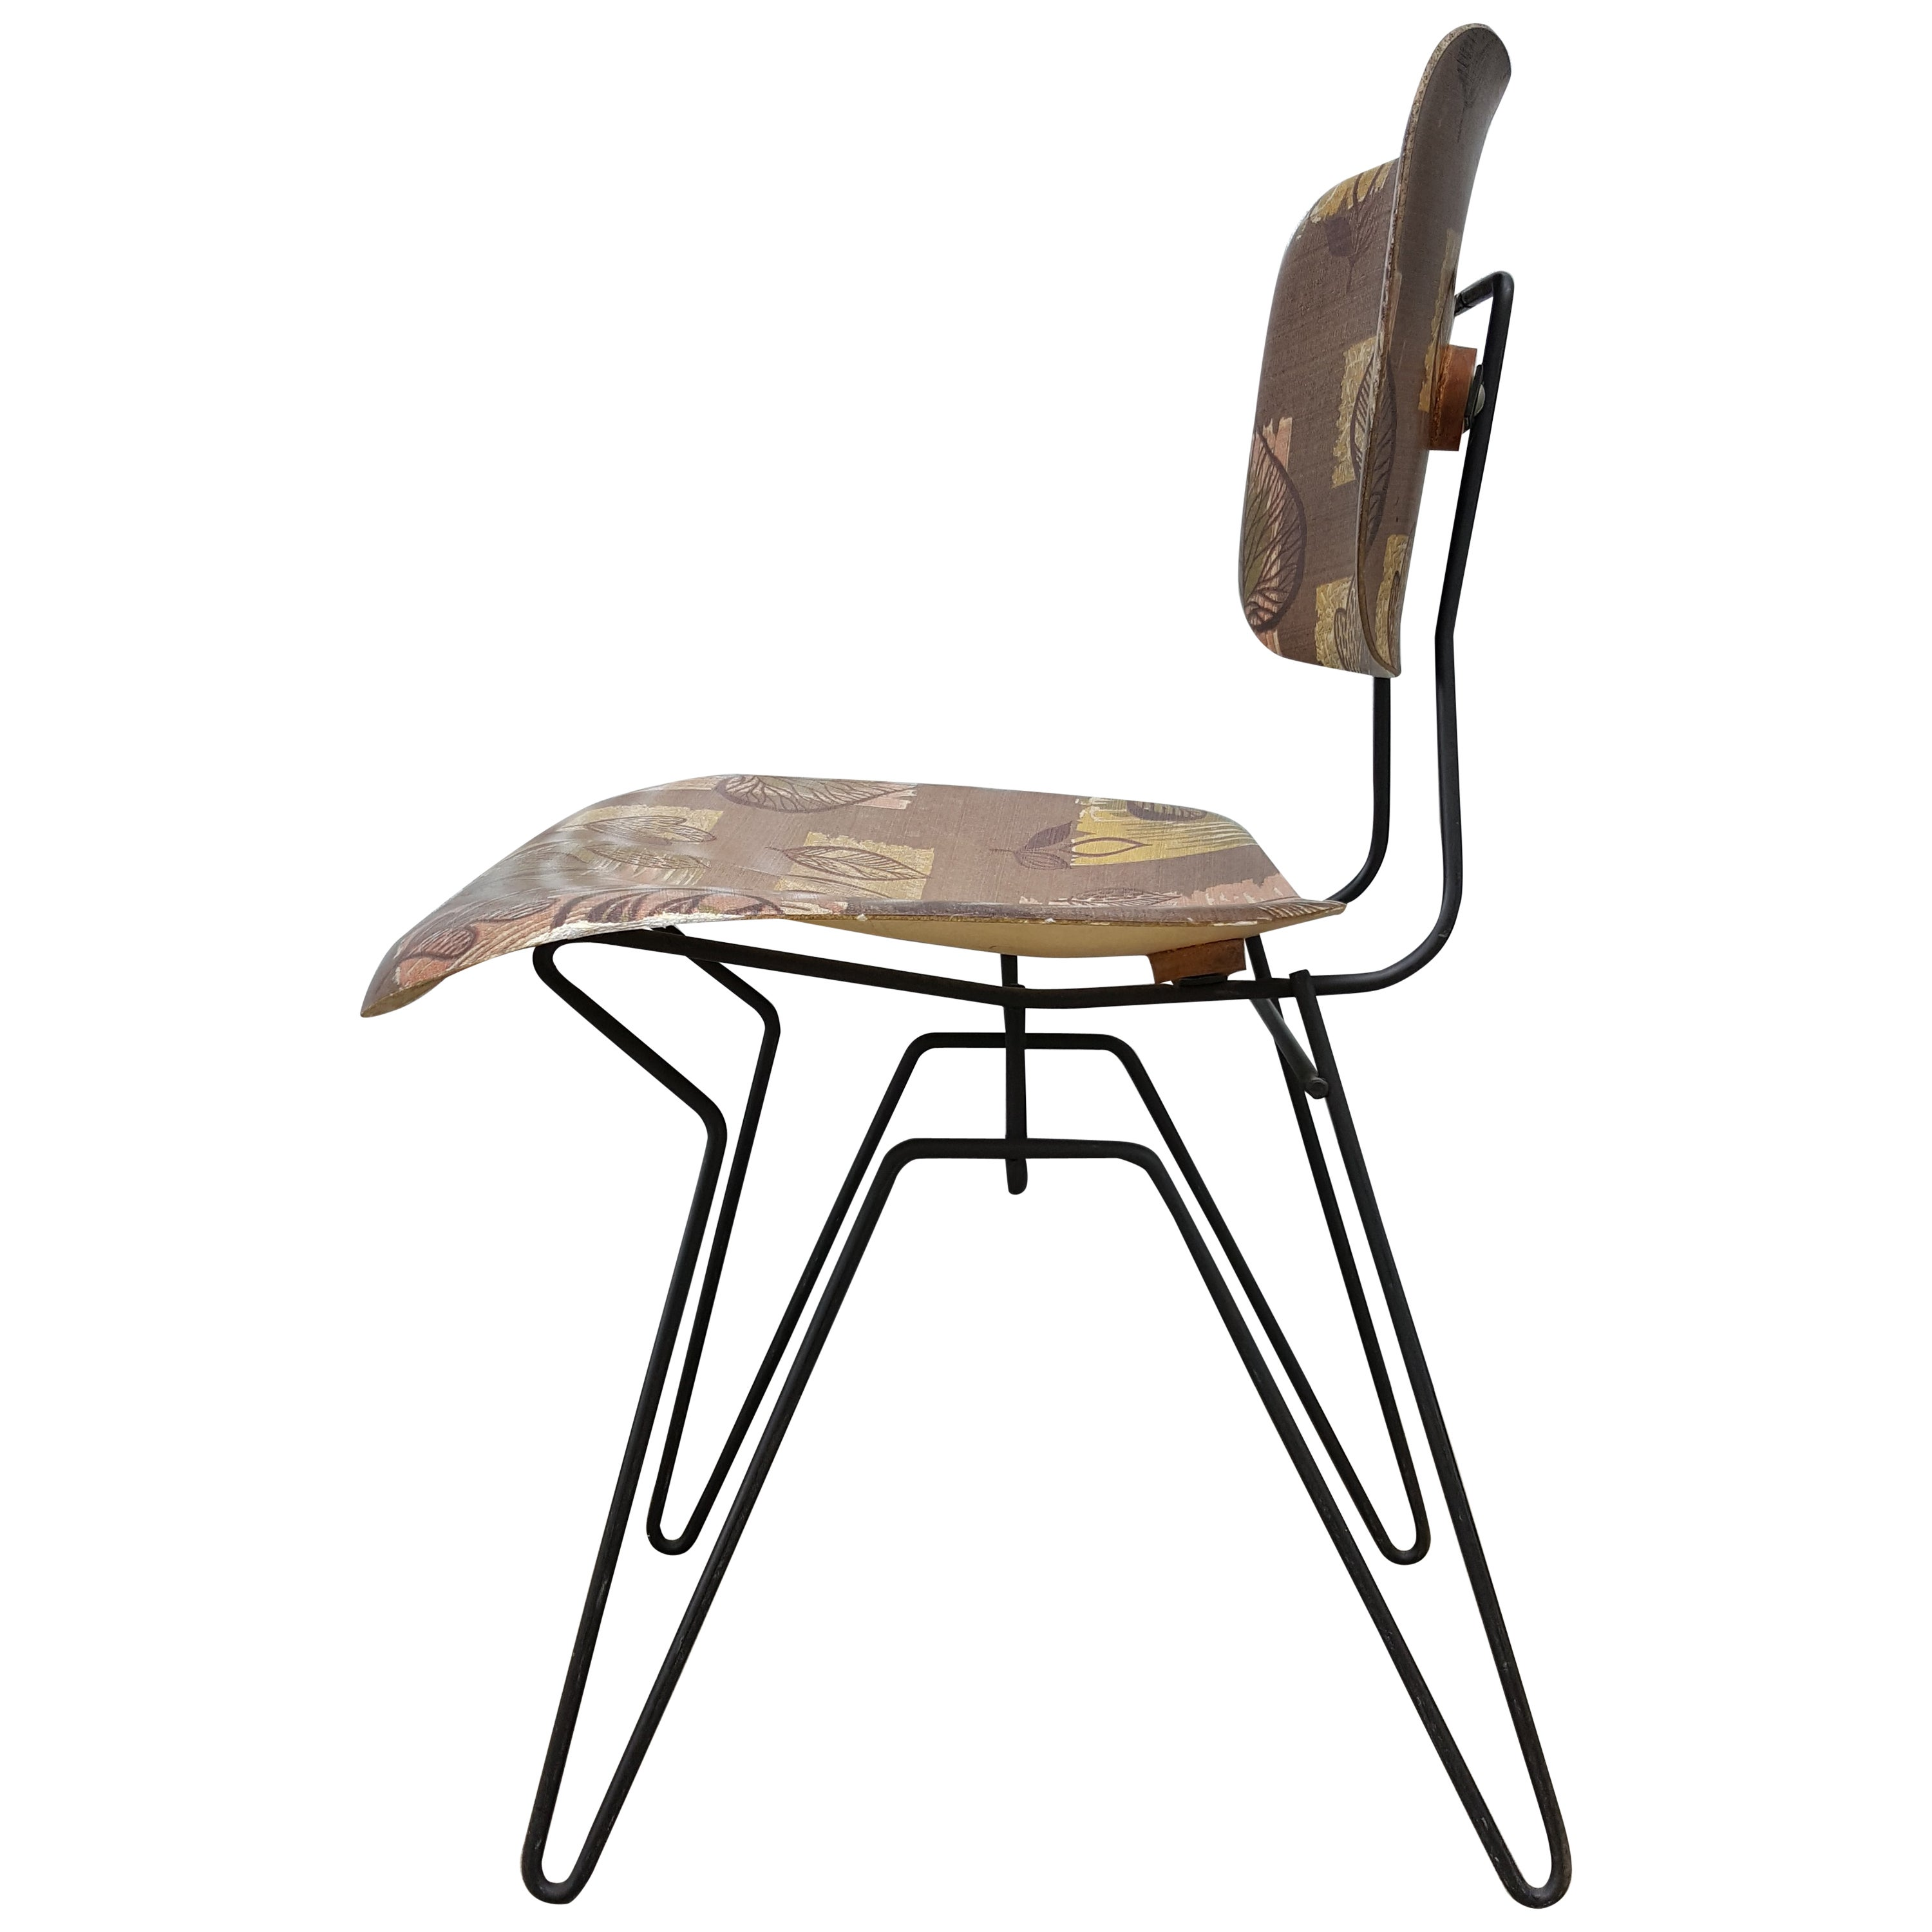 Hobart wells iron hairpin and formed fiberglass lounge chair for sale at 1stdibs